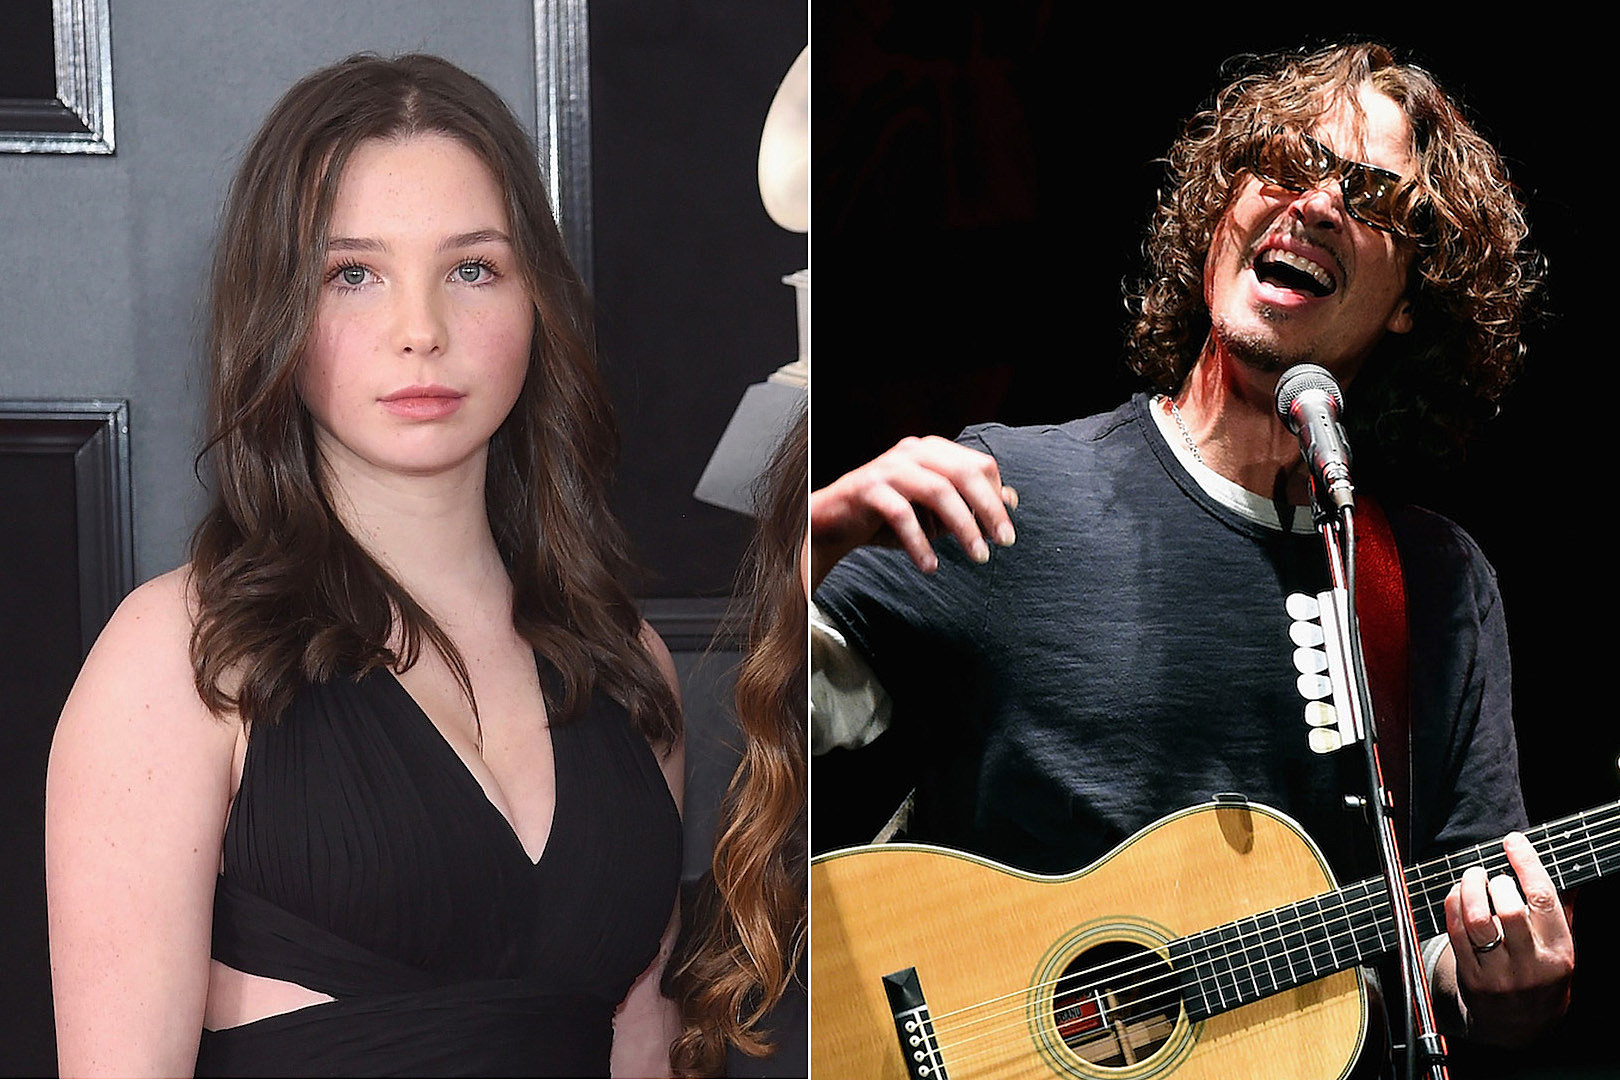 Chris Cornell's Daughter Lily Details Their Relationship, Grief